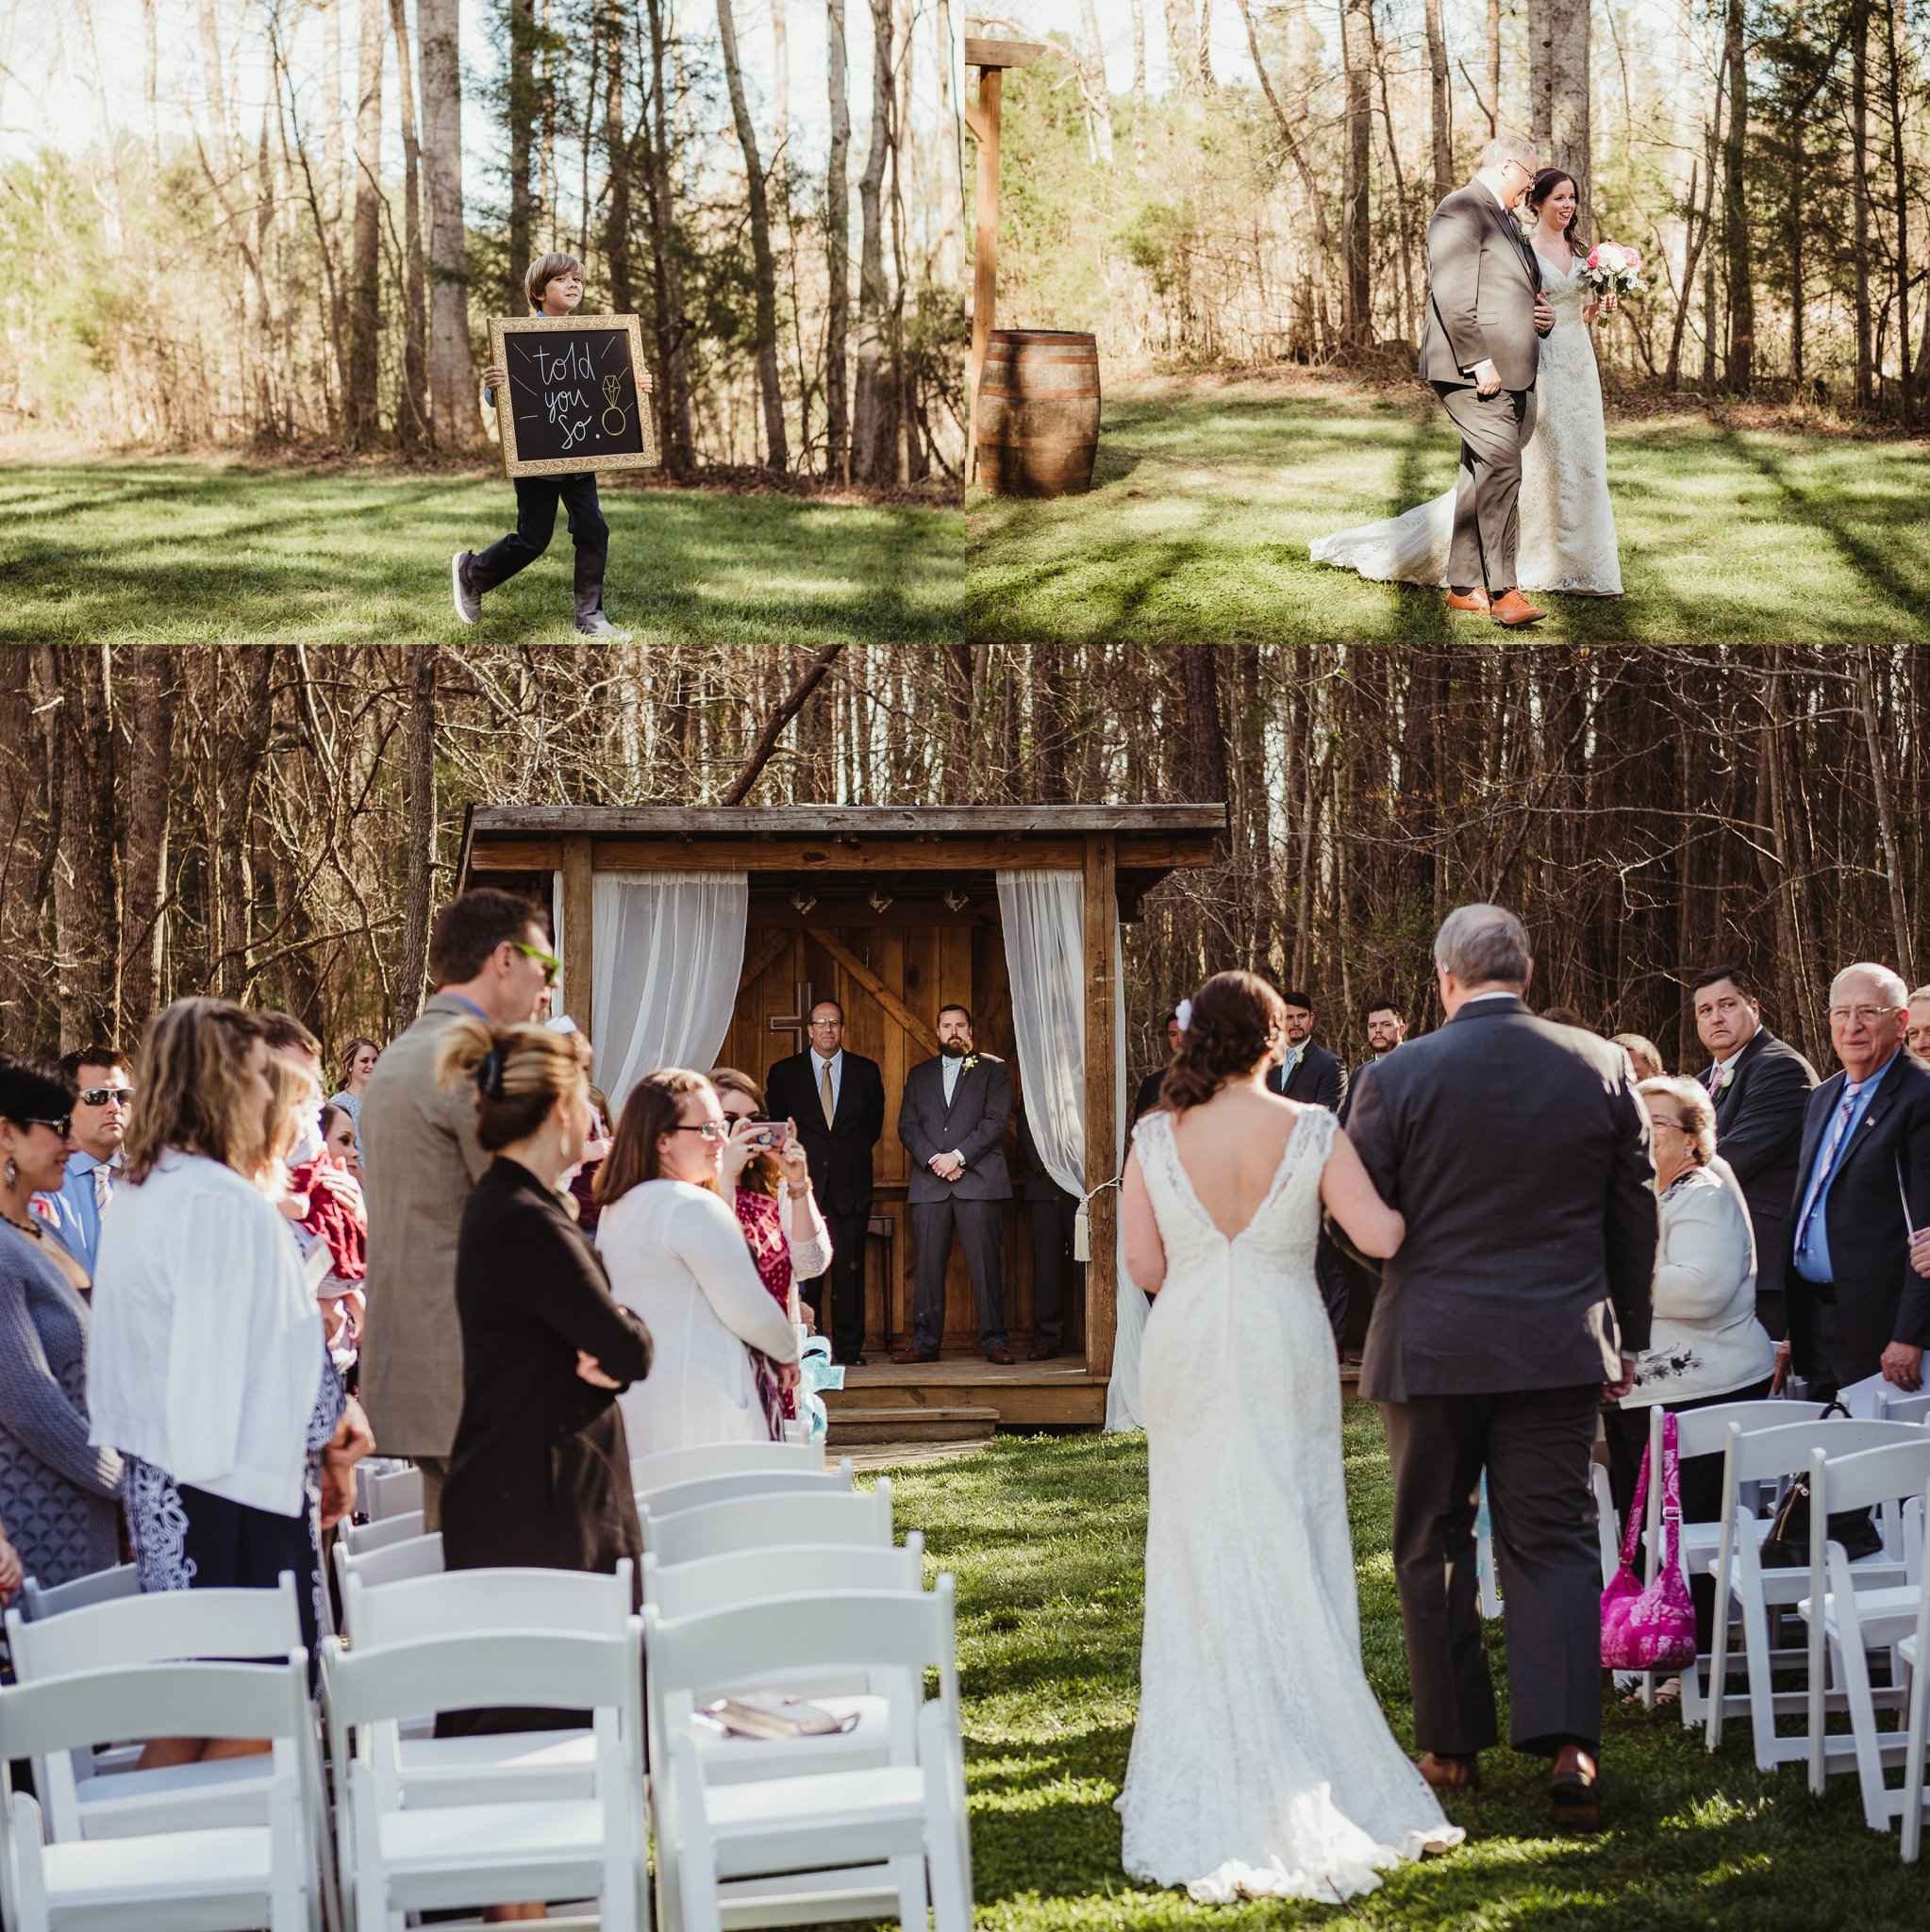 The bride and groom walk down the aisle at Carlee Farms in Oxford, NC, taken by Rose Trail Images.